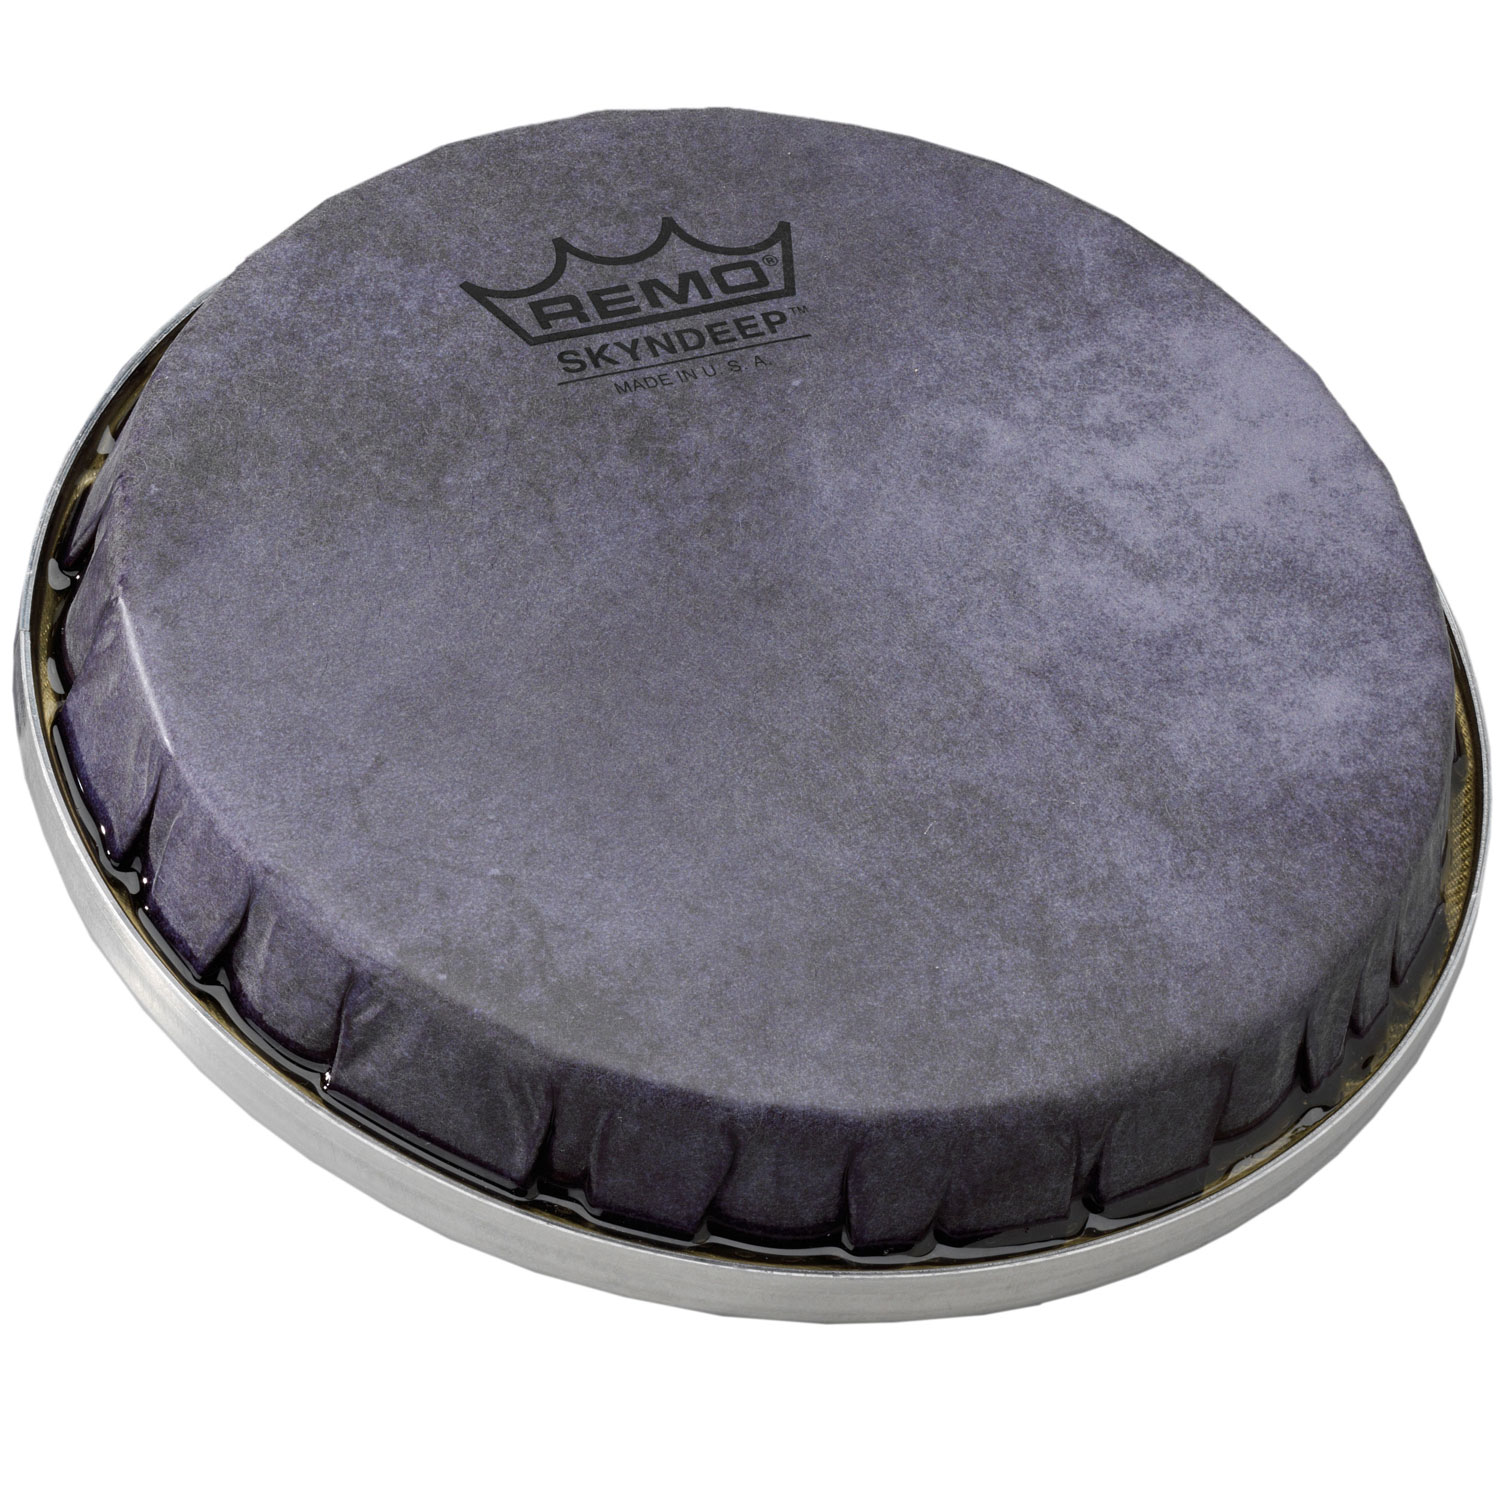 """Remo 8"""" S-Series Skyndeep Bongo Drum Head with Black Calfskin Graphic"""